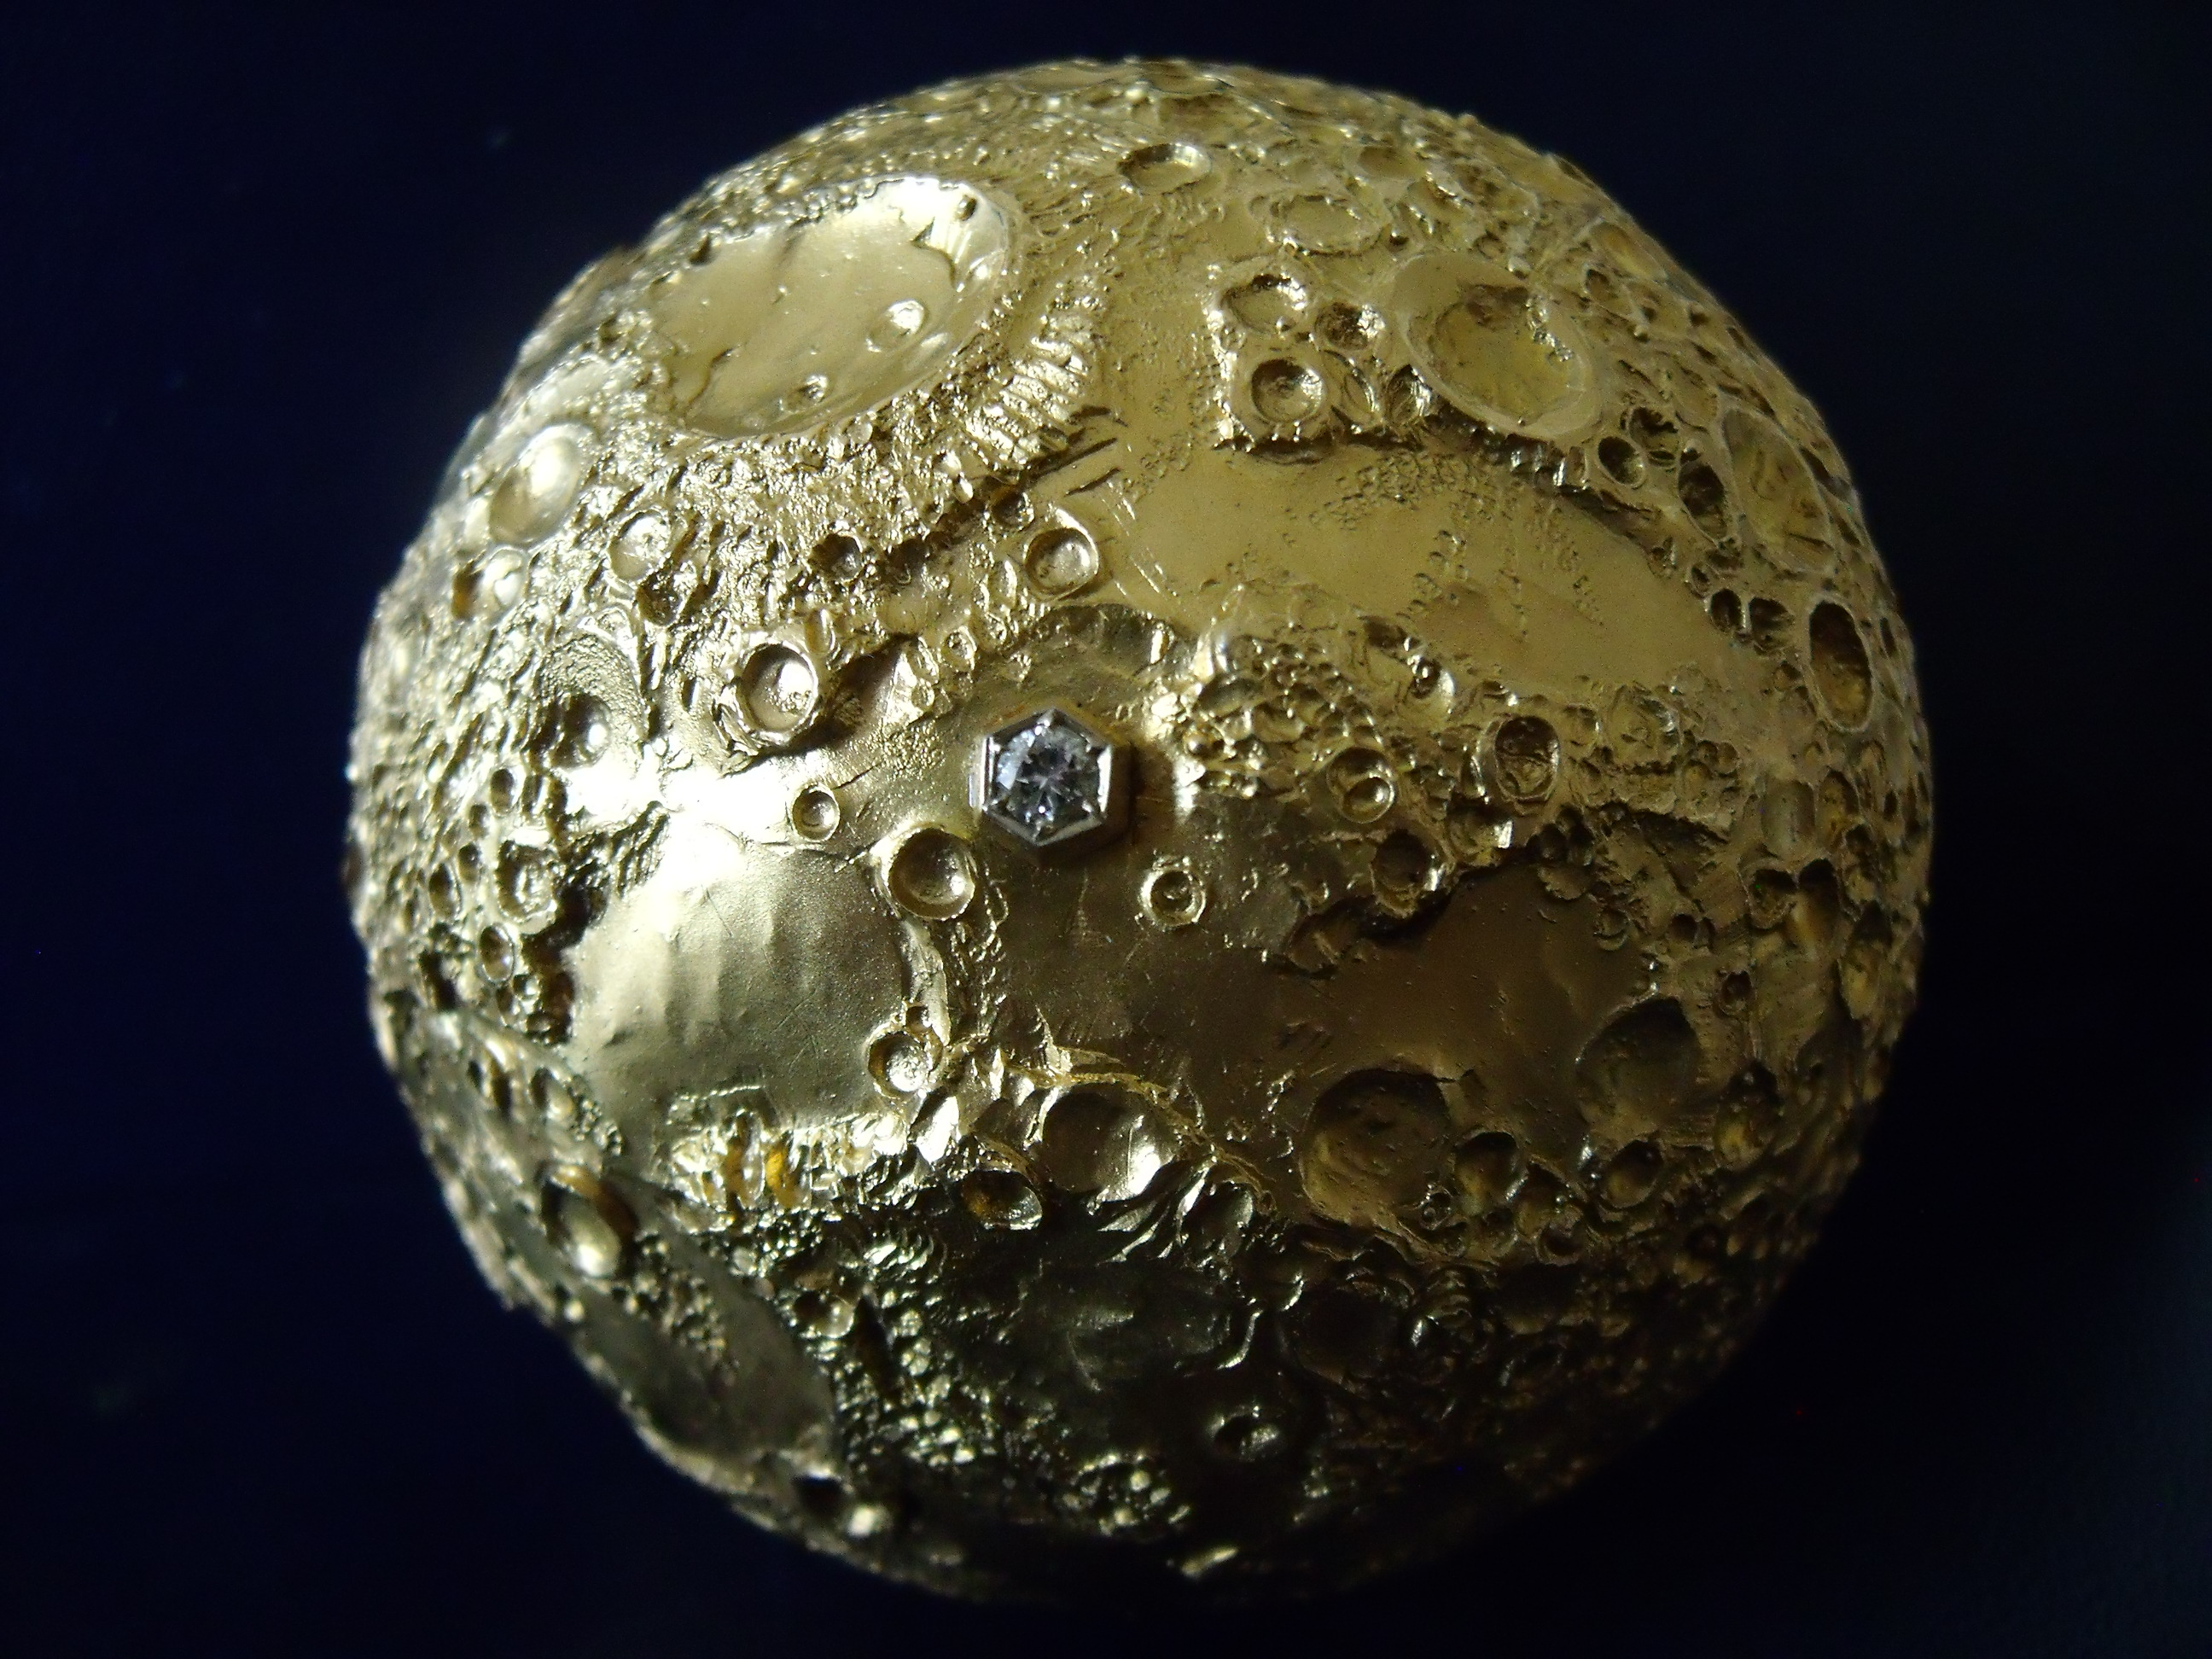 The Osman Apollo 11 Gold Moon Angry Agent